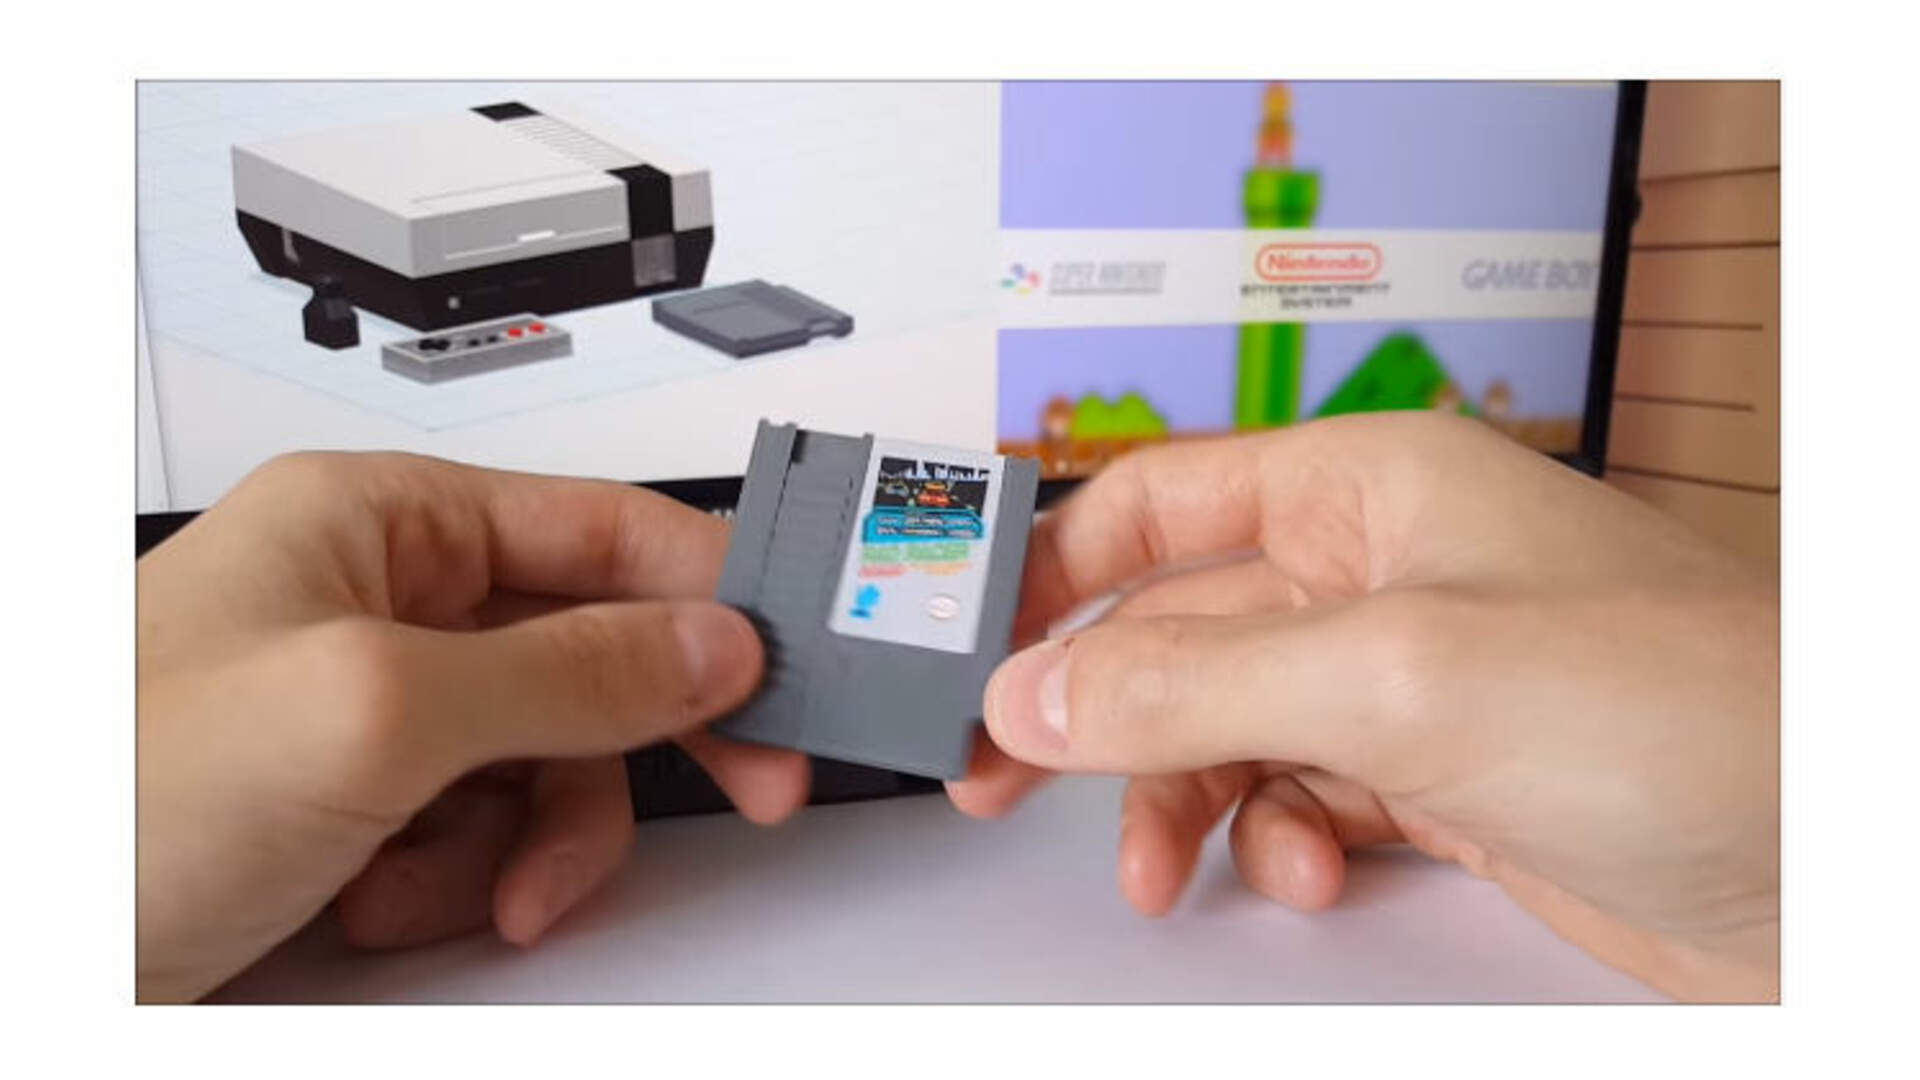 This Fan-Made Mini NES With Cartridges is Cool, but it's Not What the NES Mini Should Be